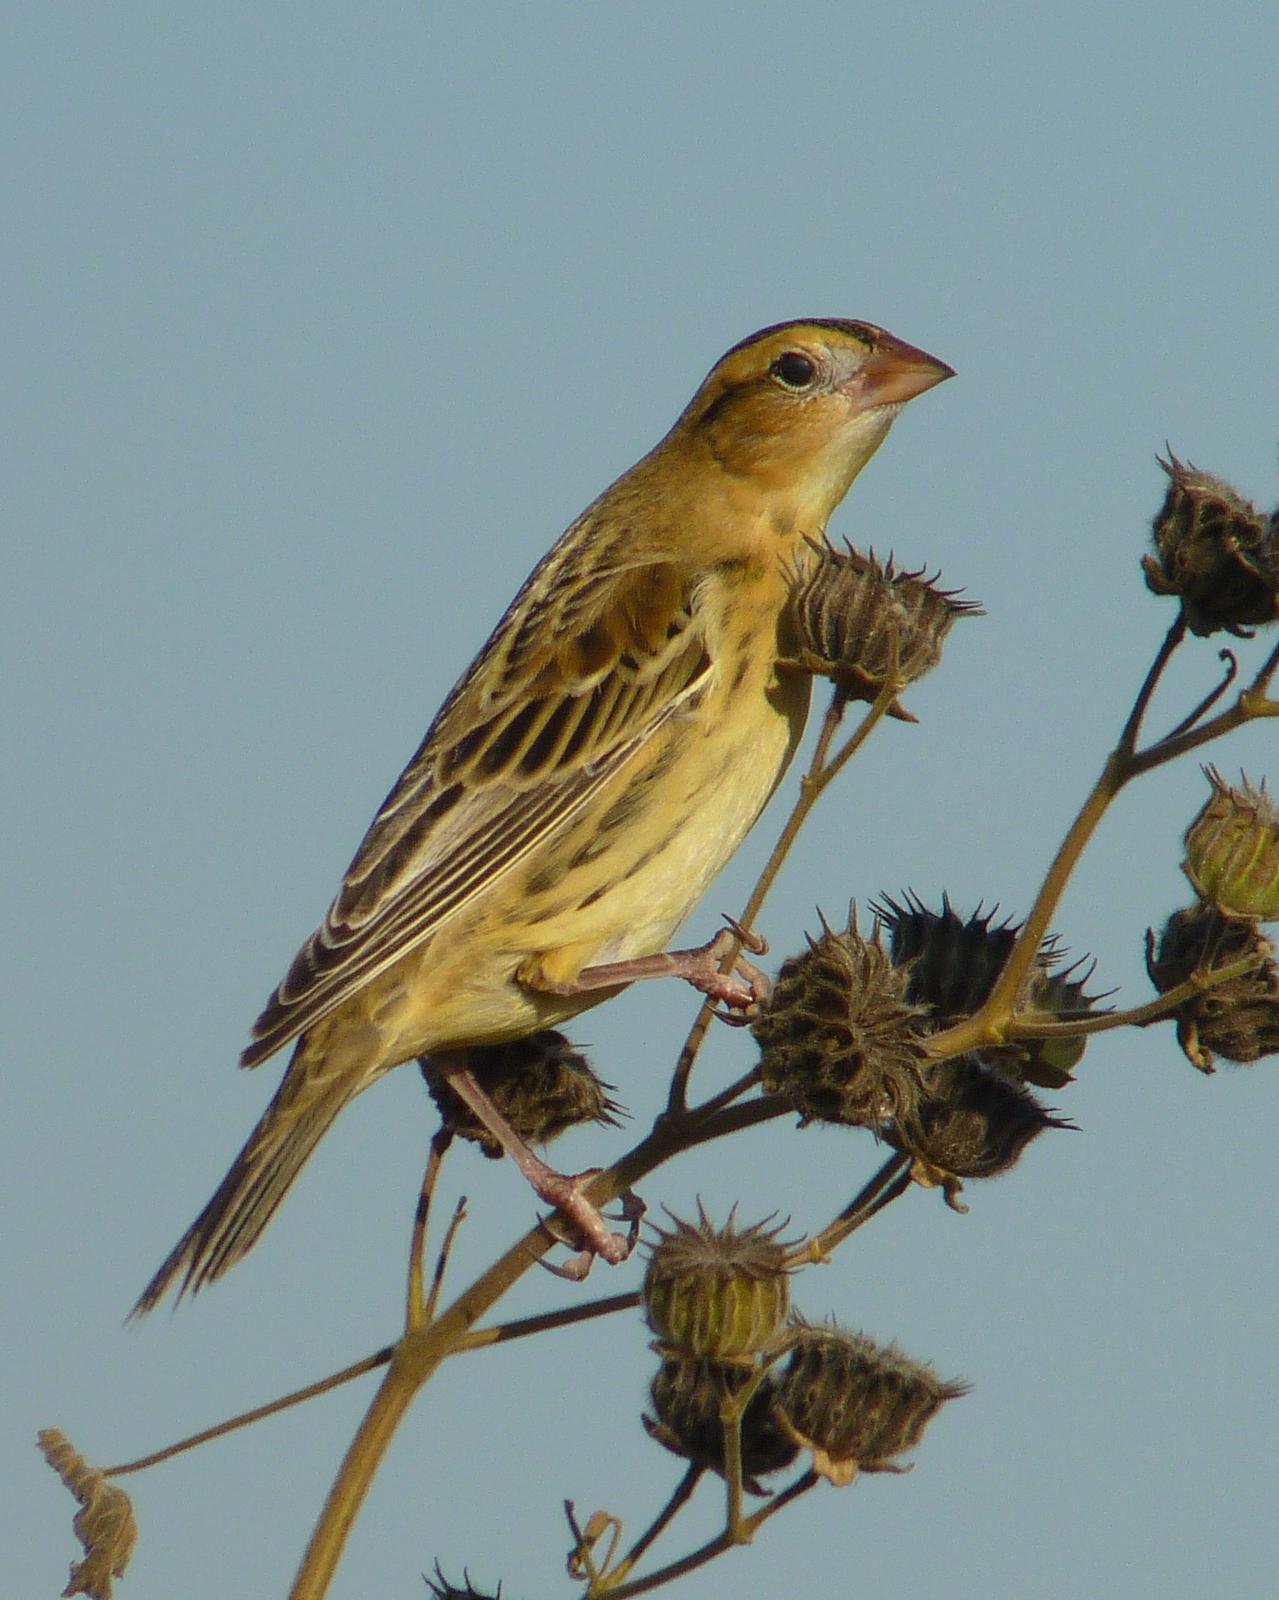 Bobolink Photo by Sean Fitzgerald